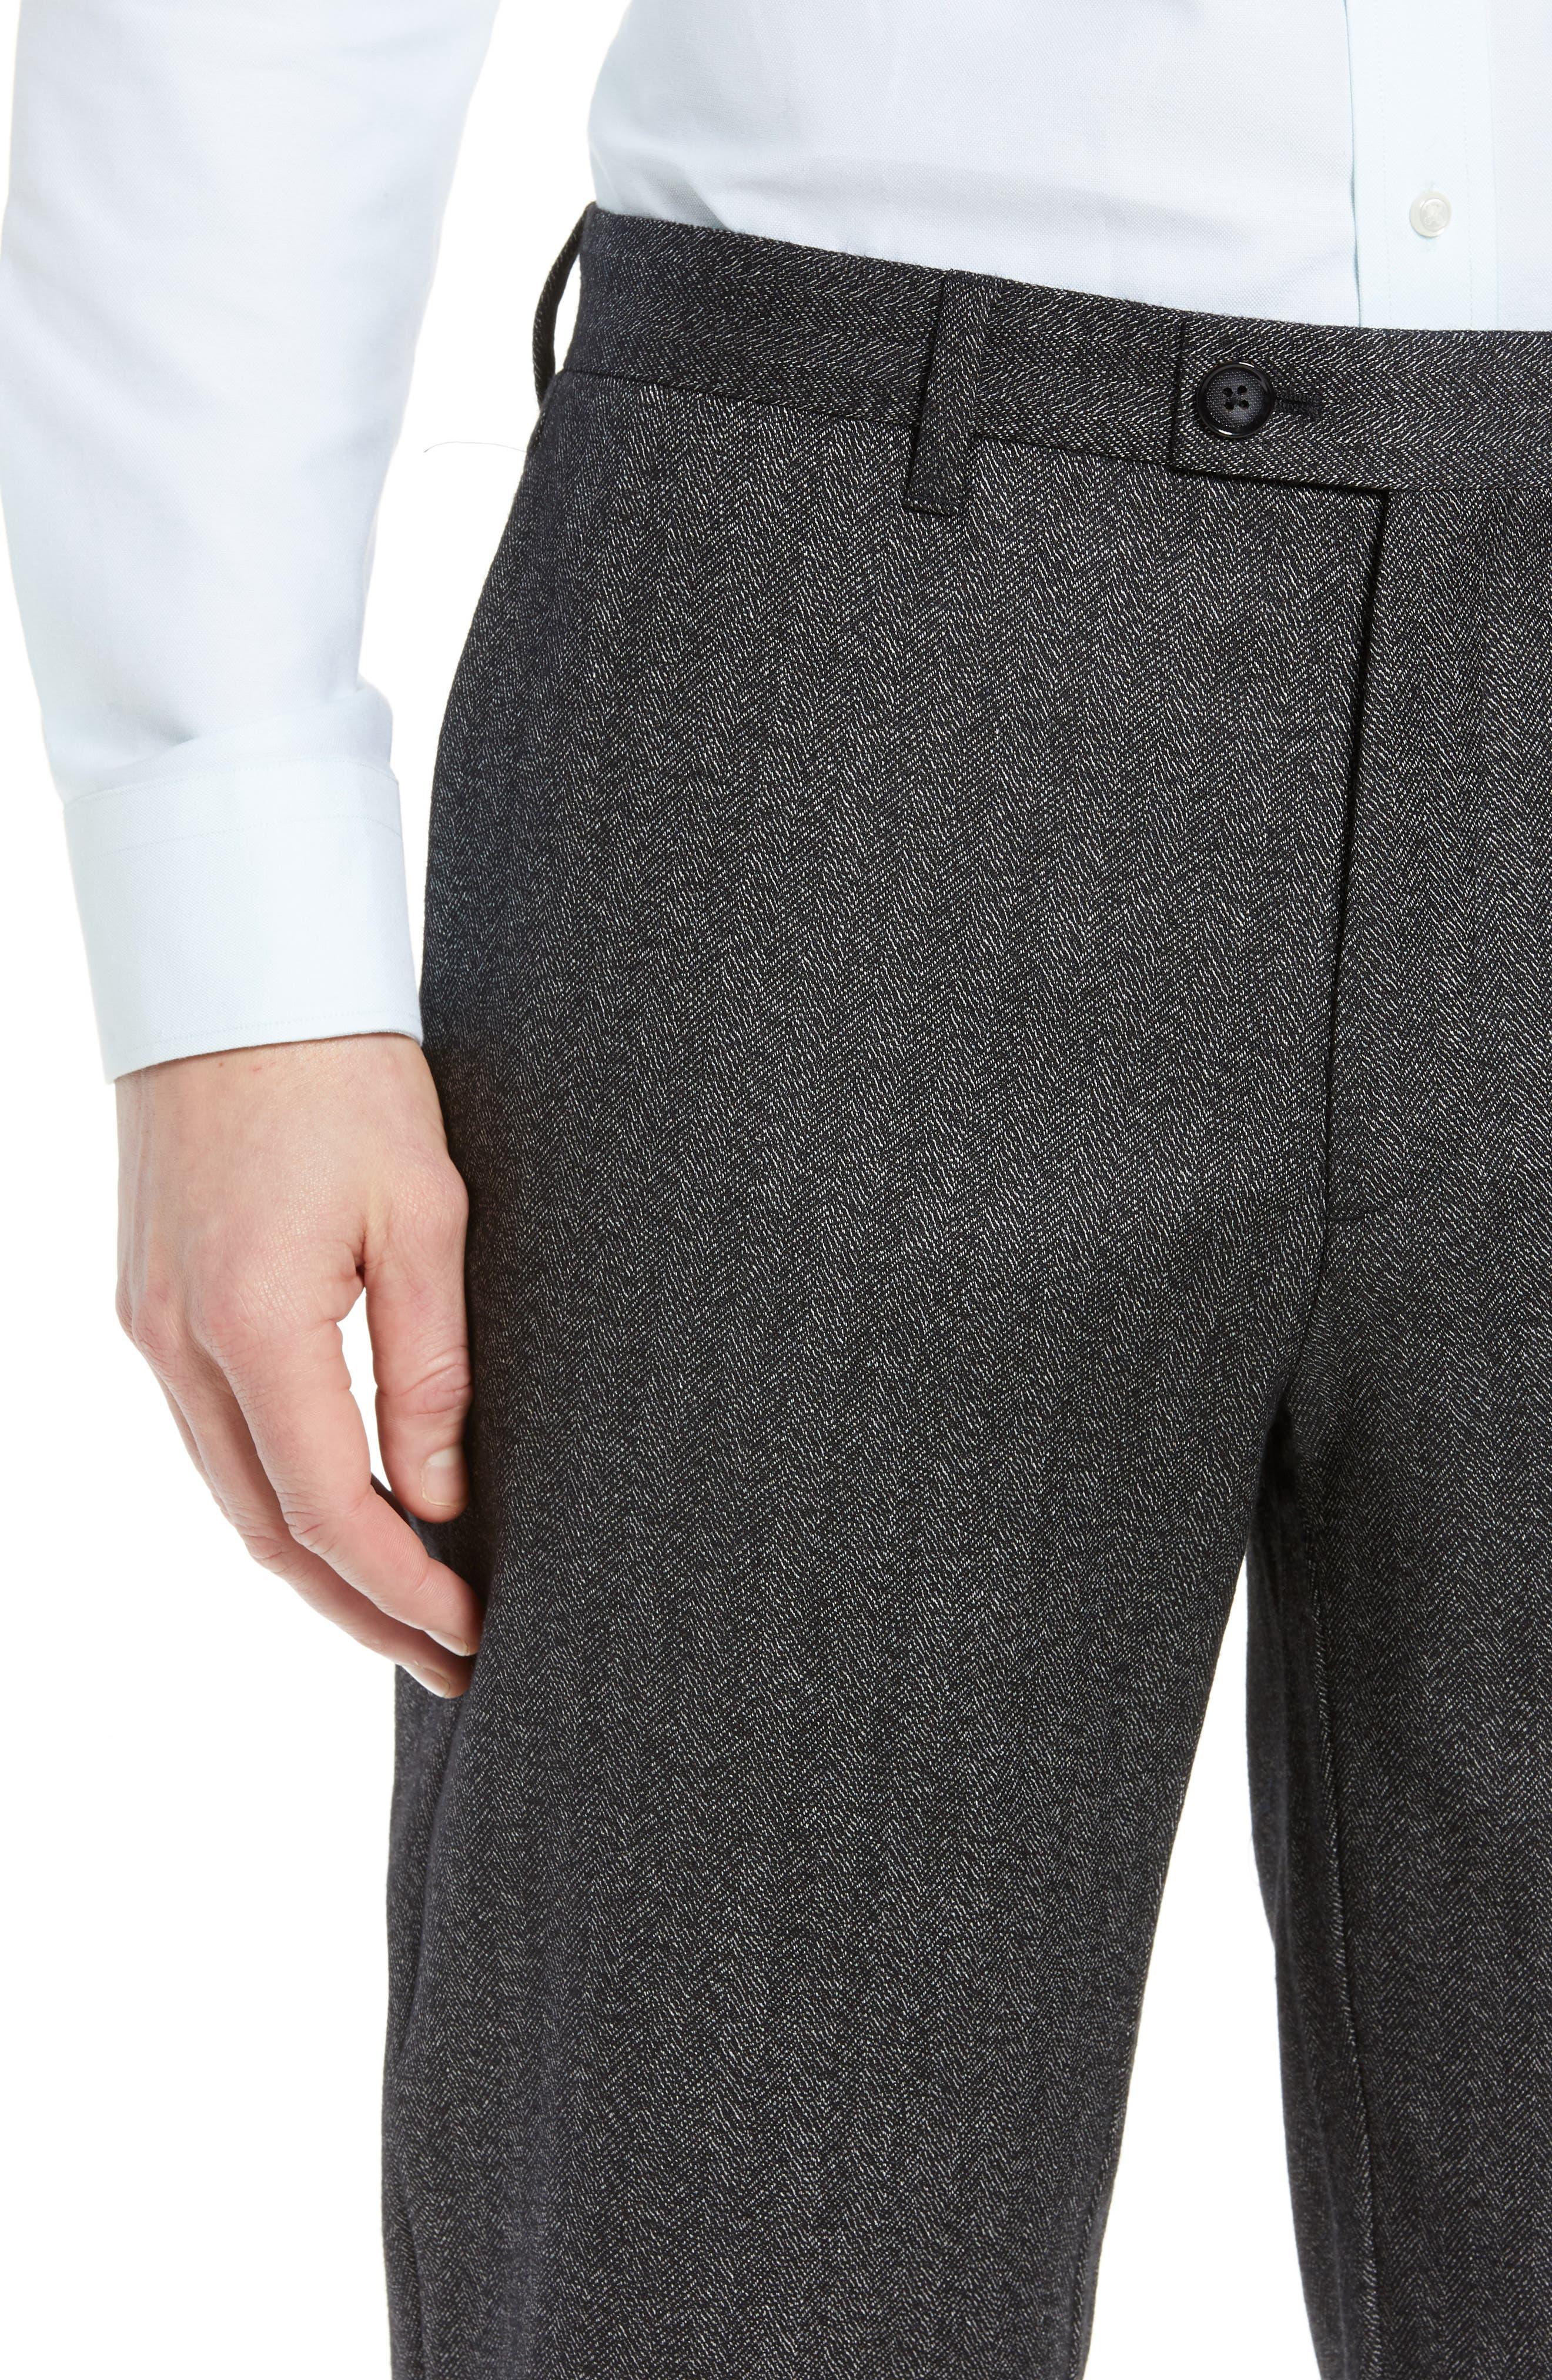 Wenstro Classic Fit Trousers,                             Alternate thumbnail 4, color,                             020